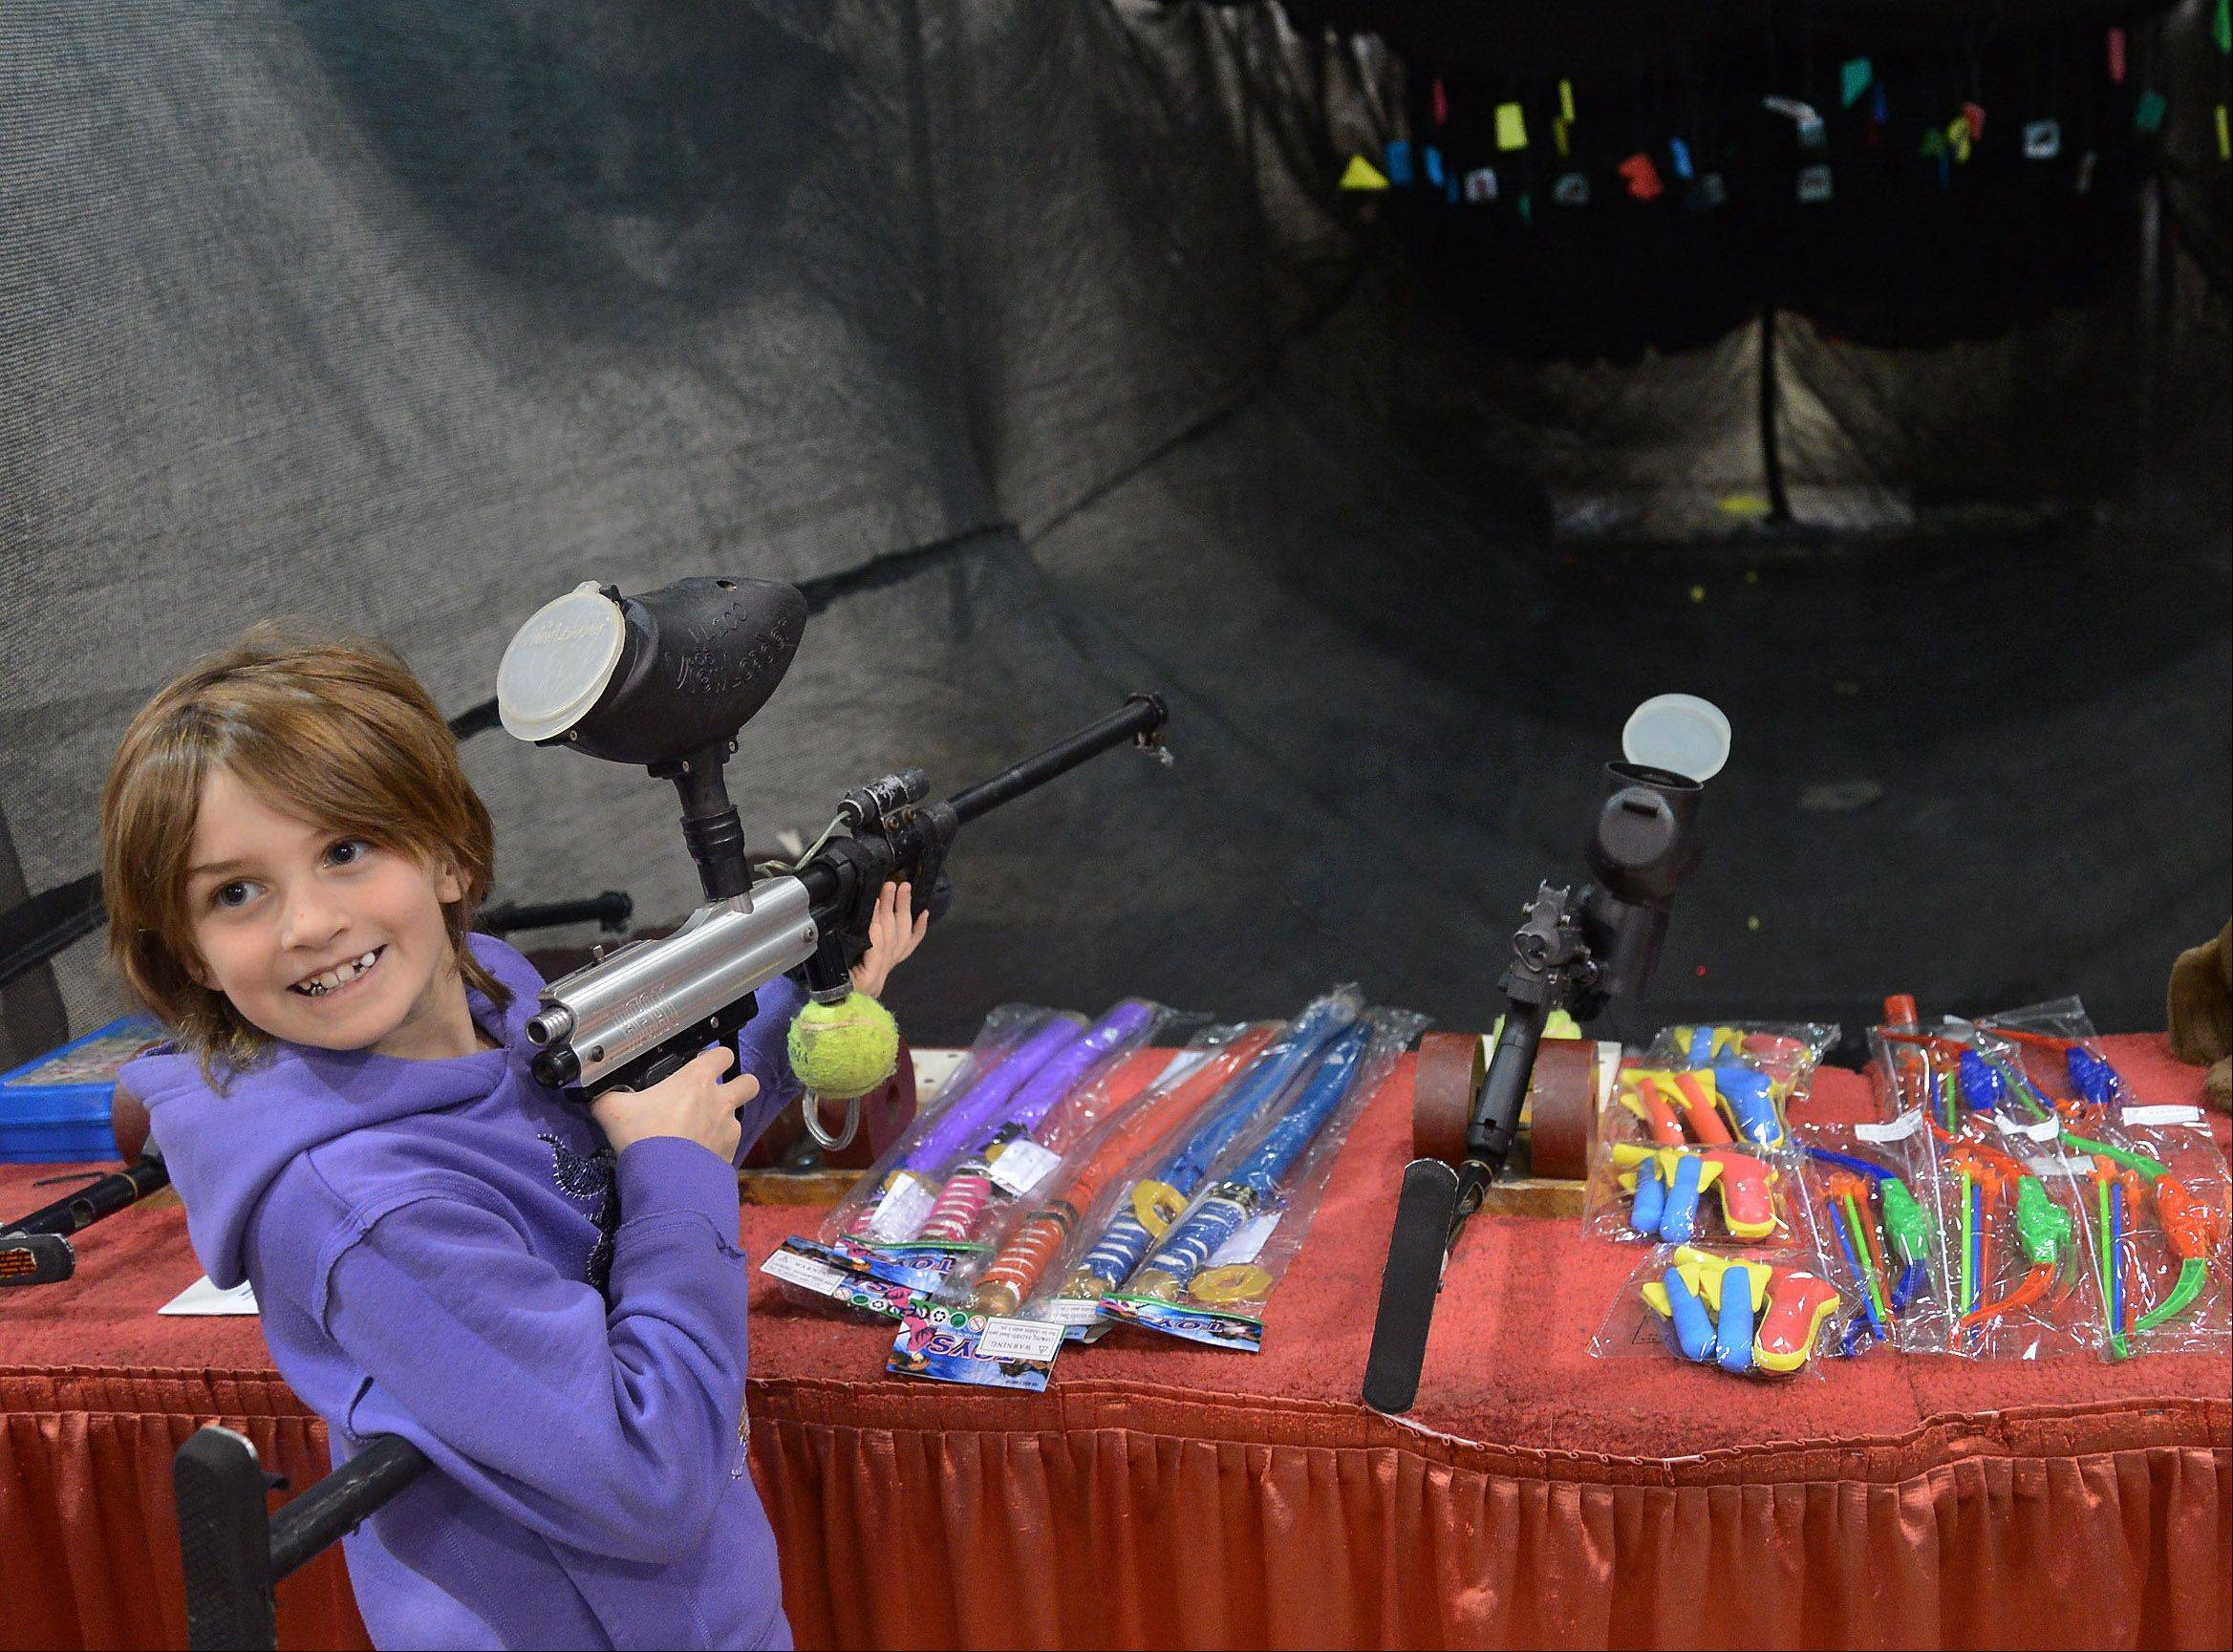 Adaire Matthias of Crown Point, Ind., tries her luck at some target practice Friday at the 28th Annual Chicago Outdoor Sports Show at the Donald E. Stephens Convention Center in Rosemont.